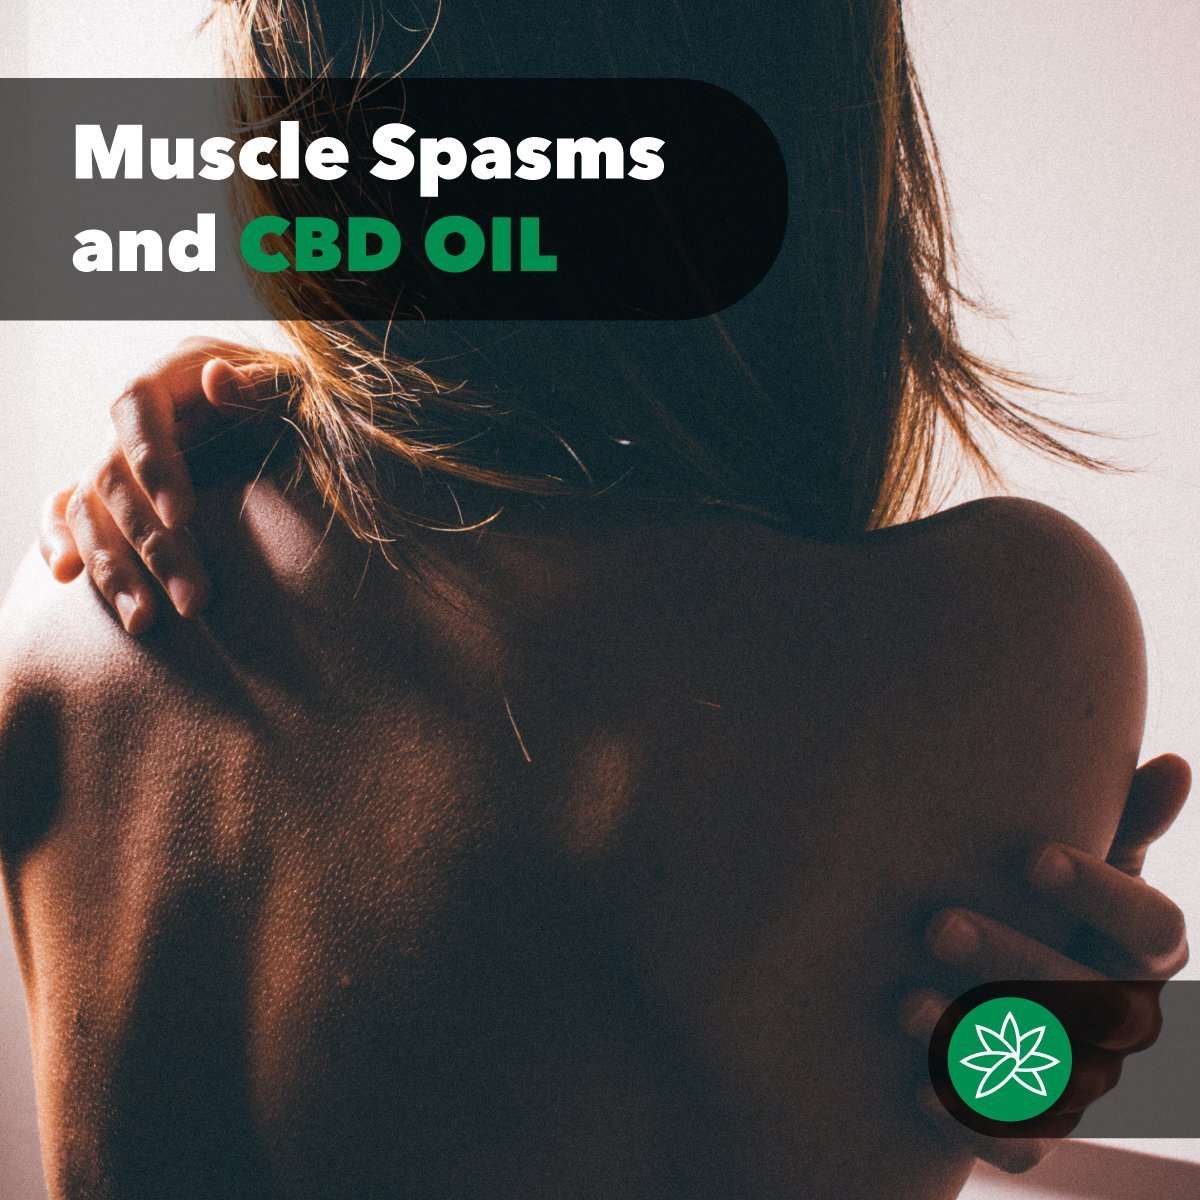 Muscle spasms and CBD oil